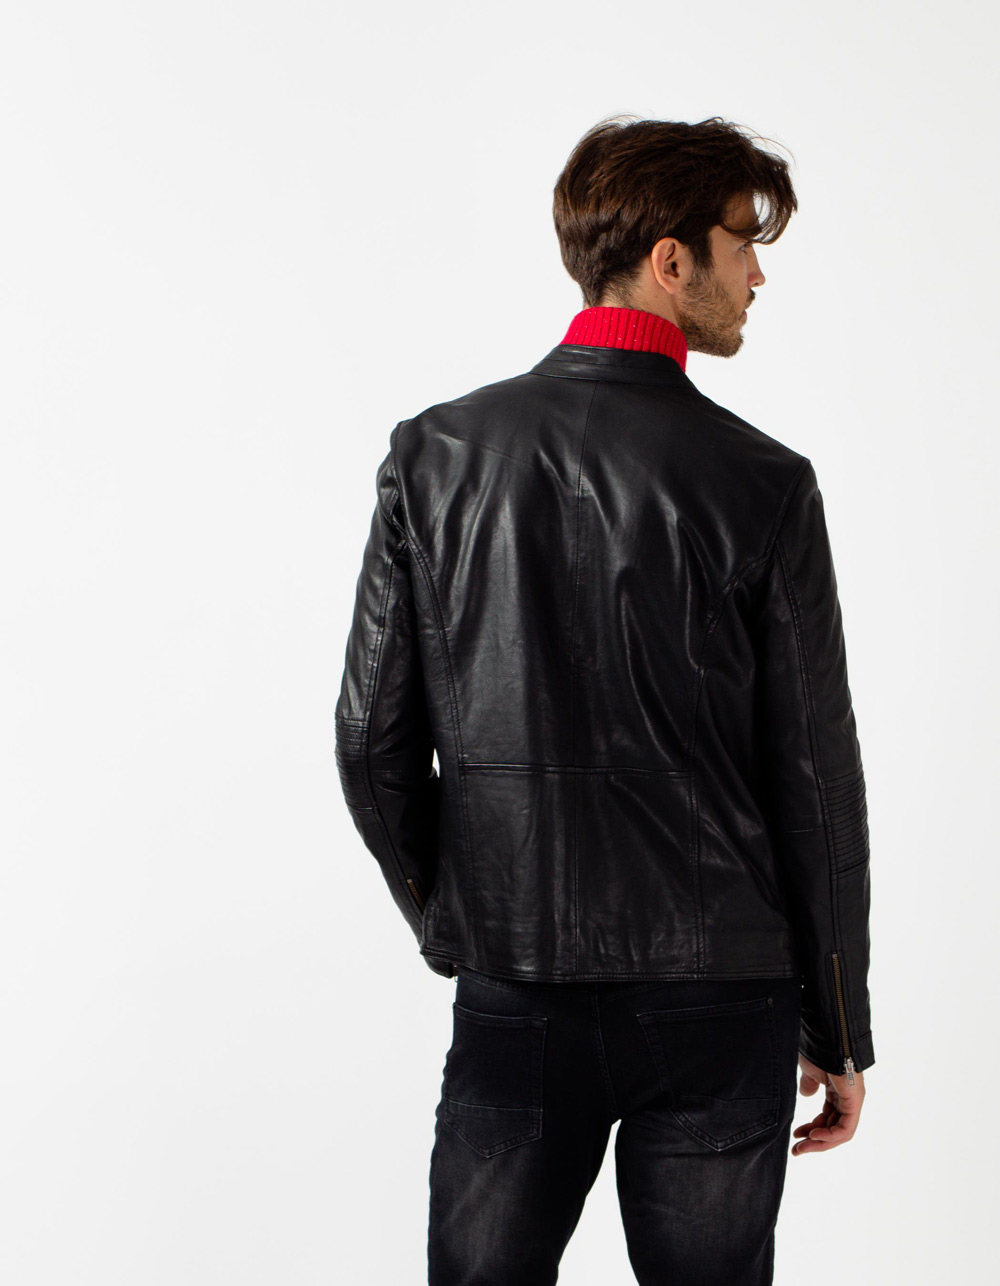 Black biker jacket - Backside